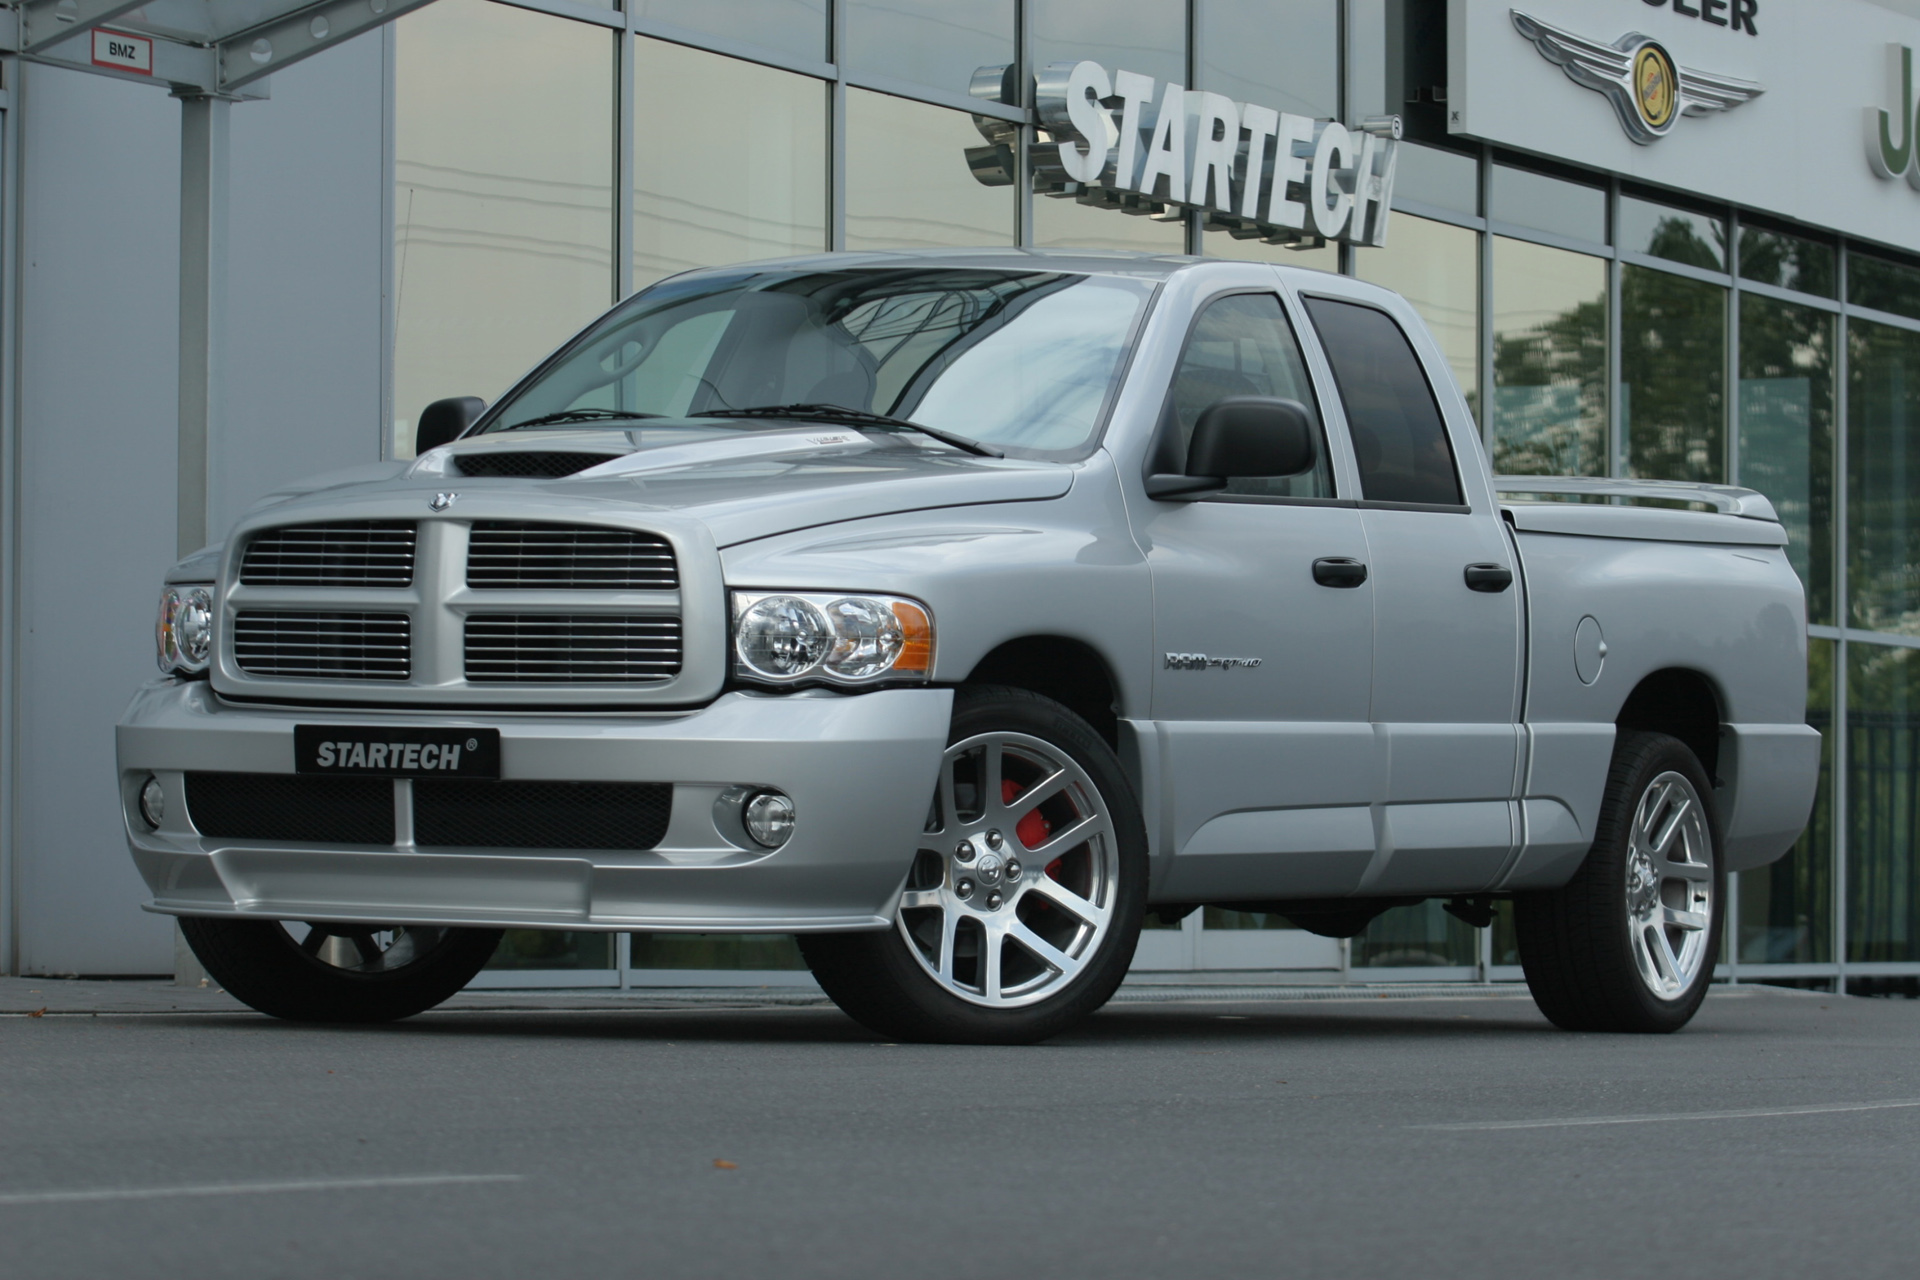 Startech Dodge Ram SRT-10 photo 58986